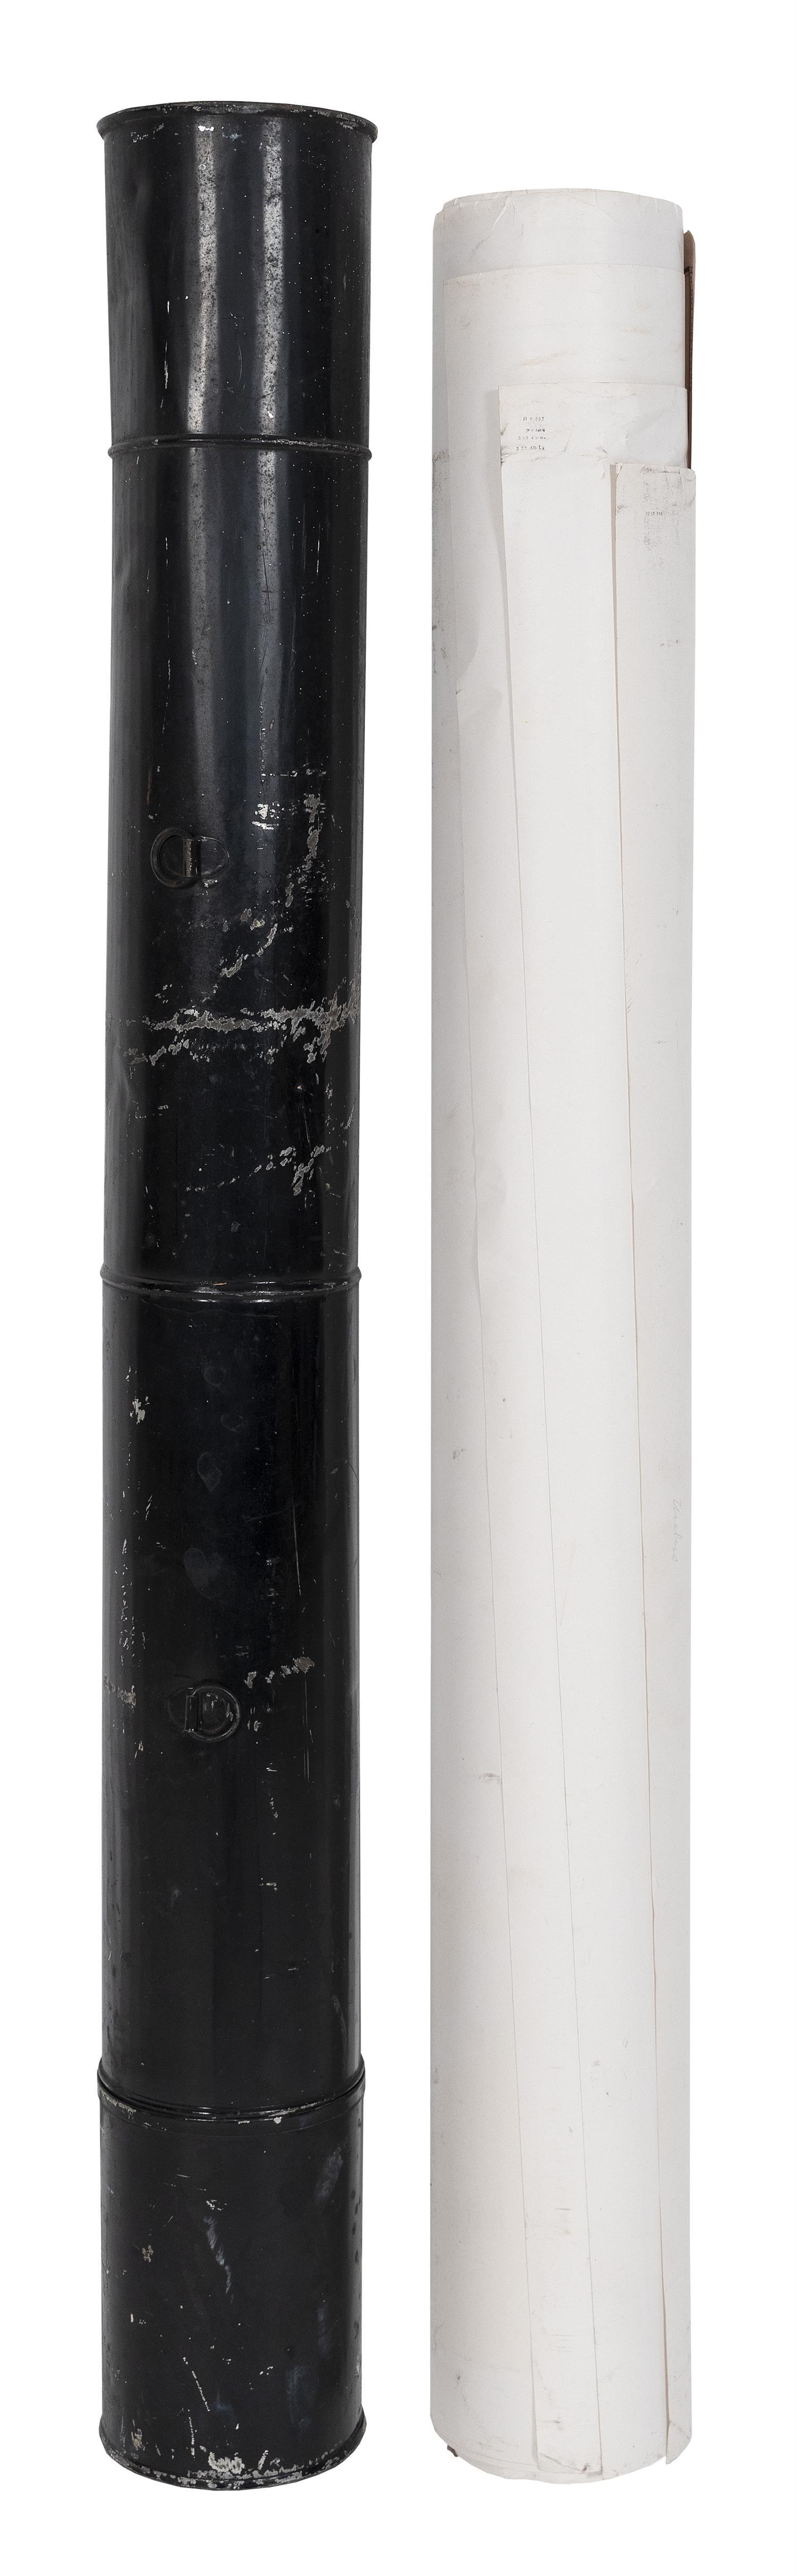 "TIN CHART TUBE Includes numerous 20th Century charts. Tube painted black and stenciled ""Charts"". Length 27""."